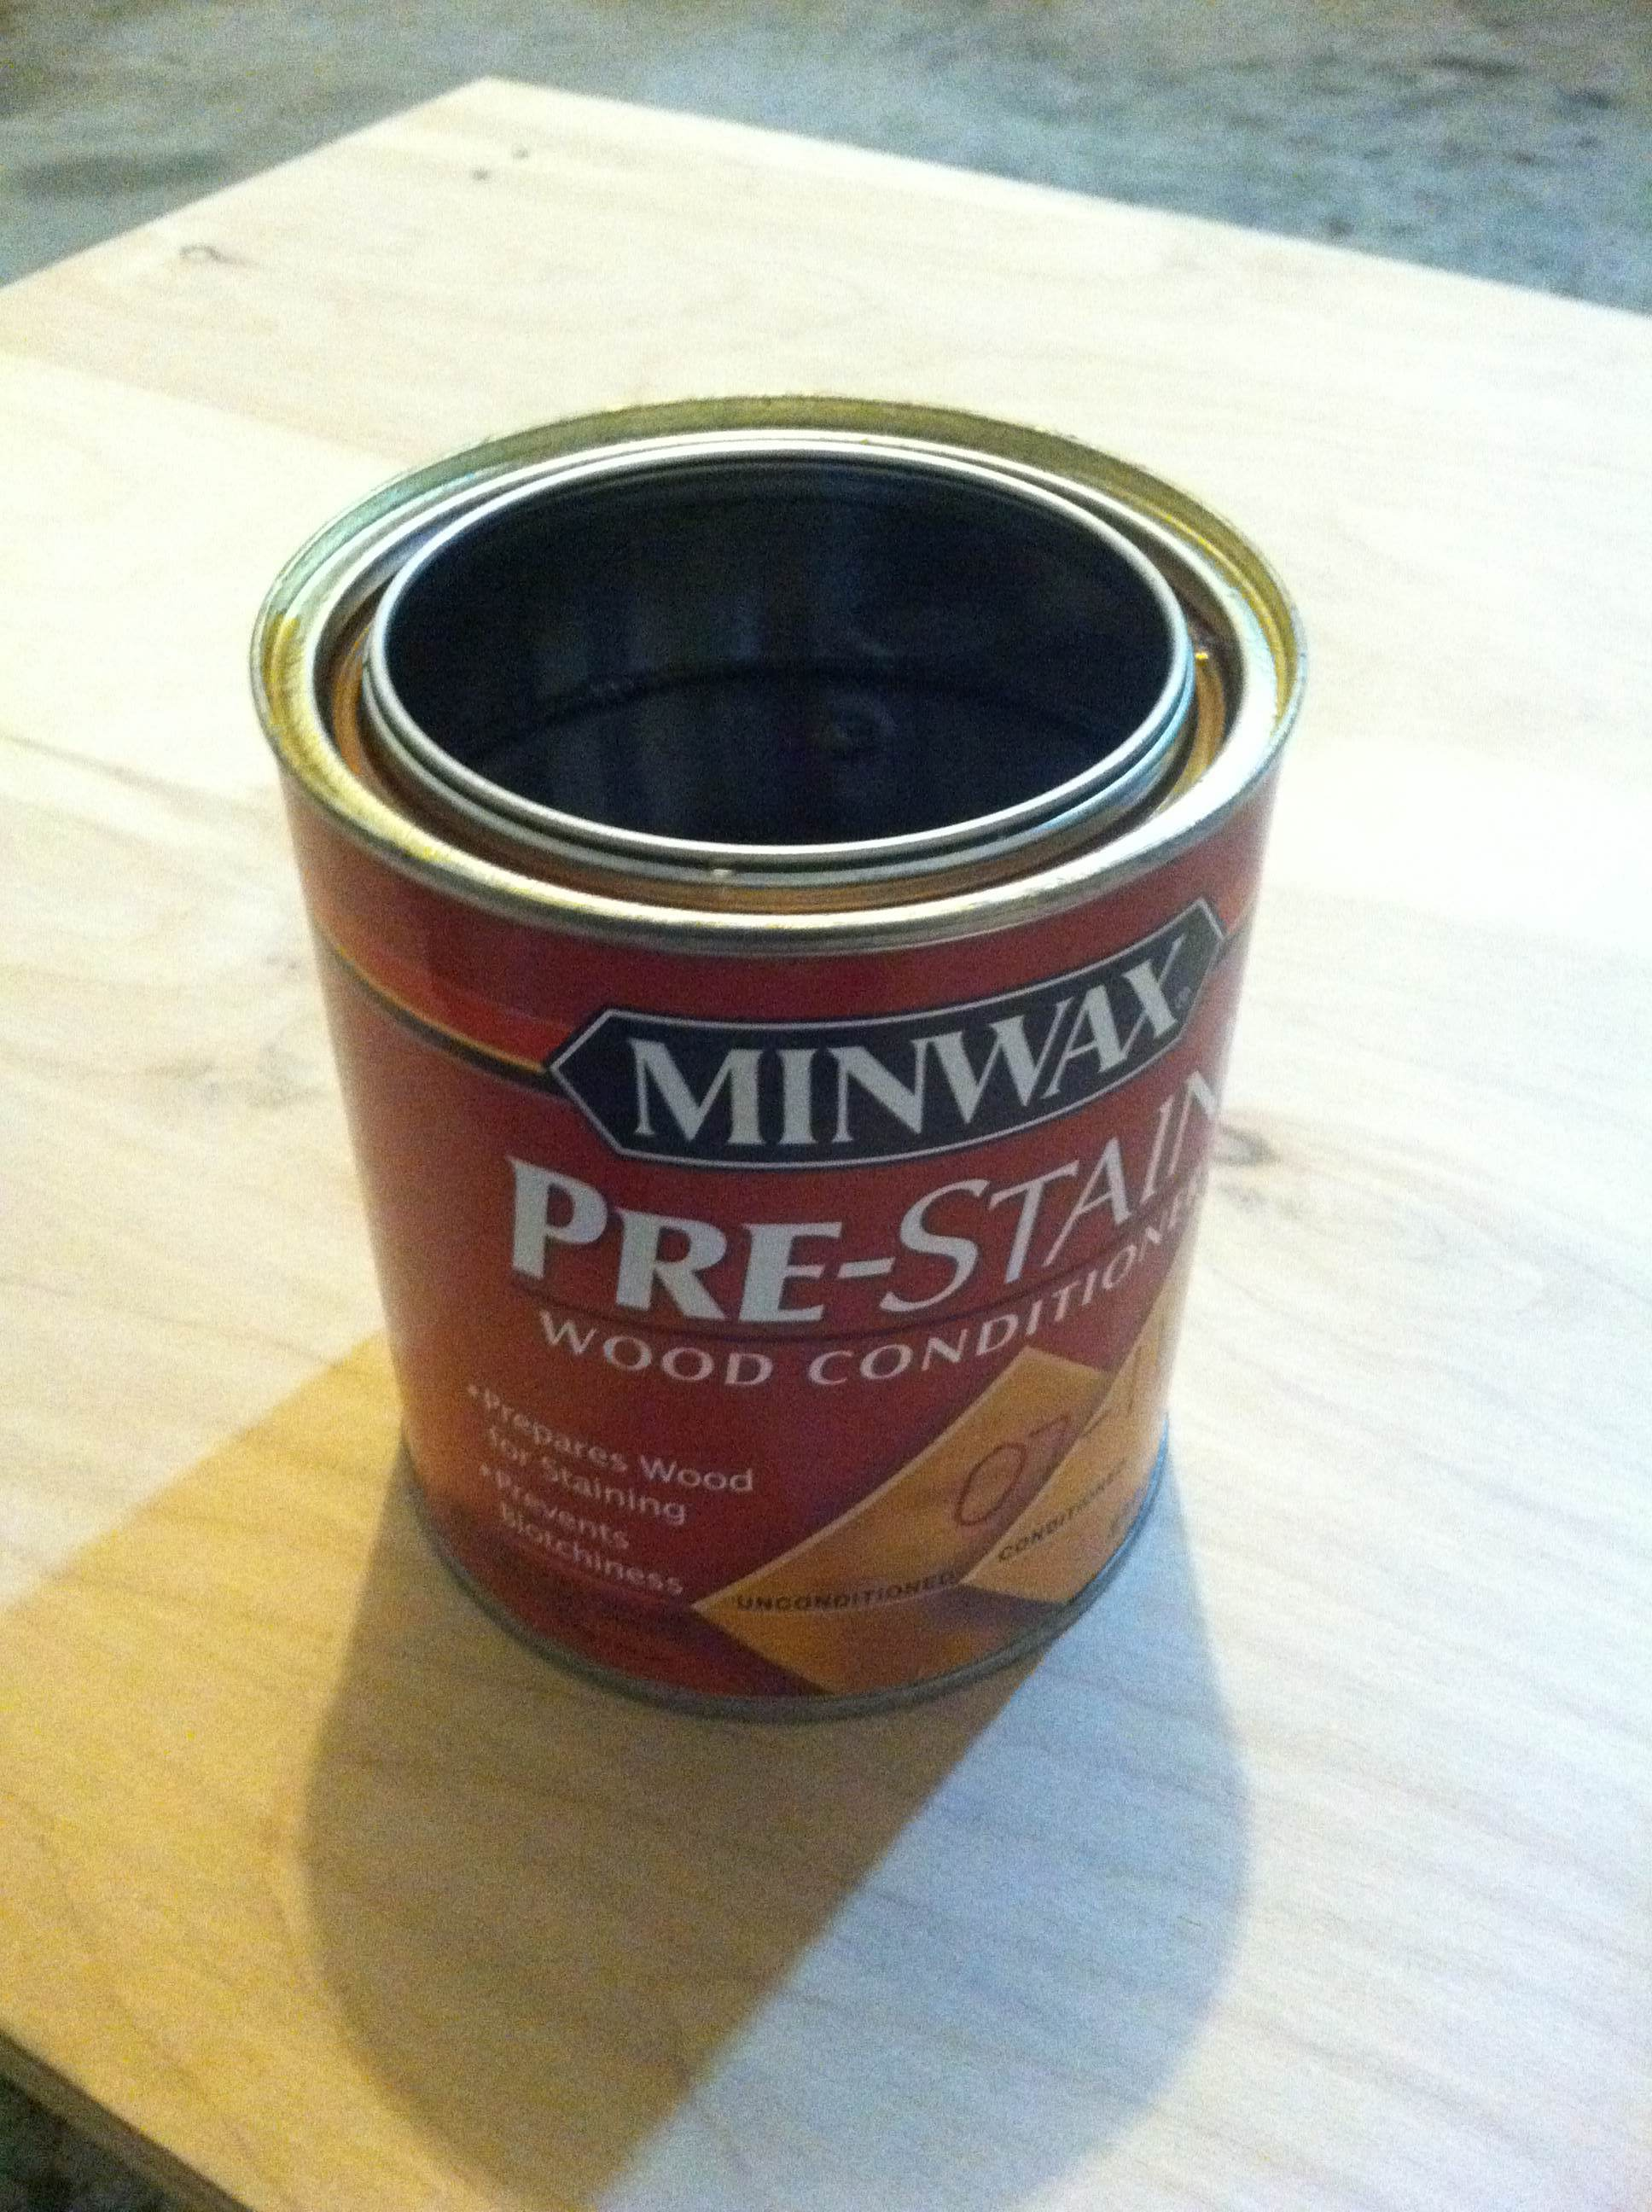 My choice of pre-stain wood conditioner. This thing makes wood look so much better!